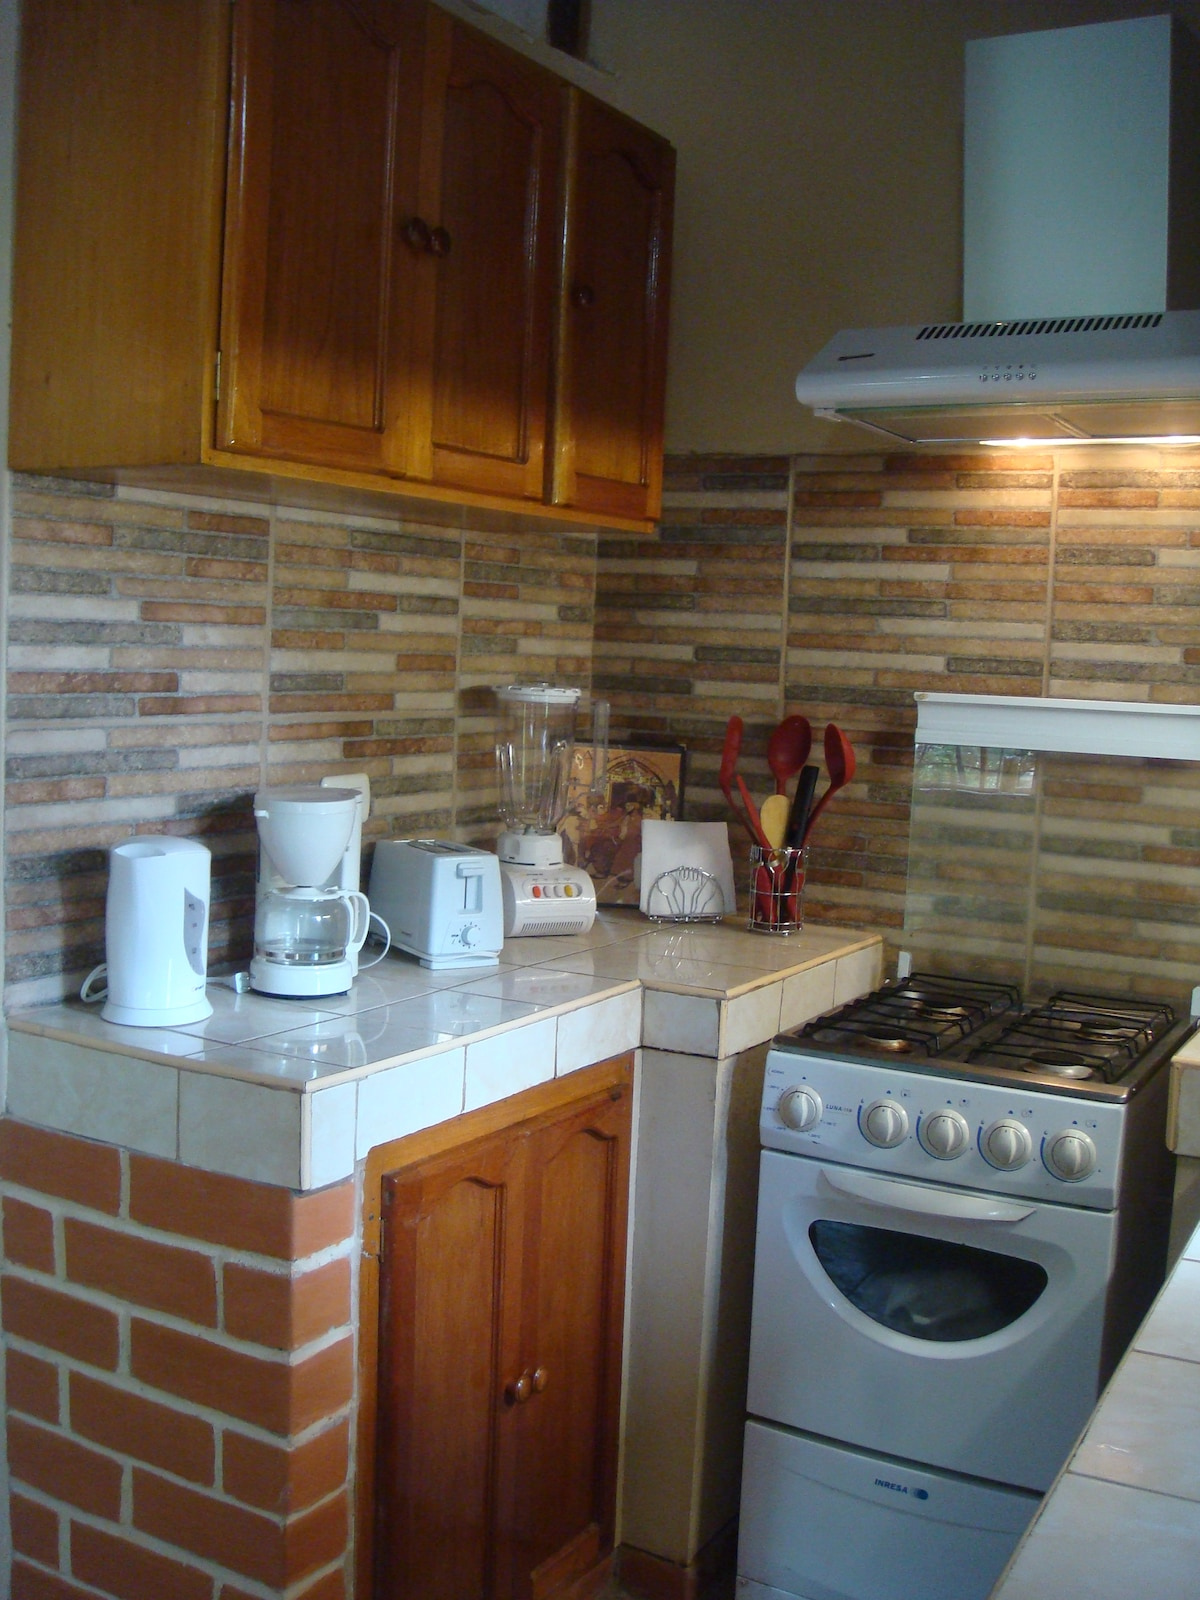 Fully furnished kitchen for your comfort.